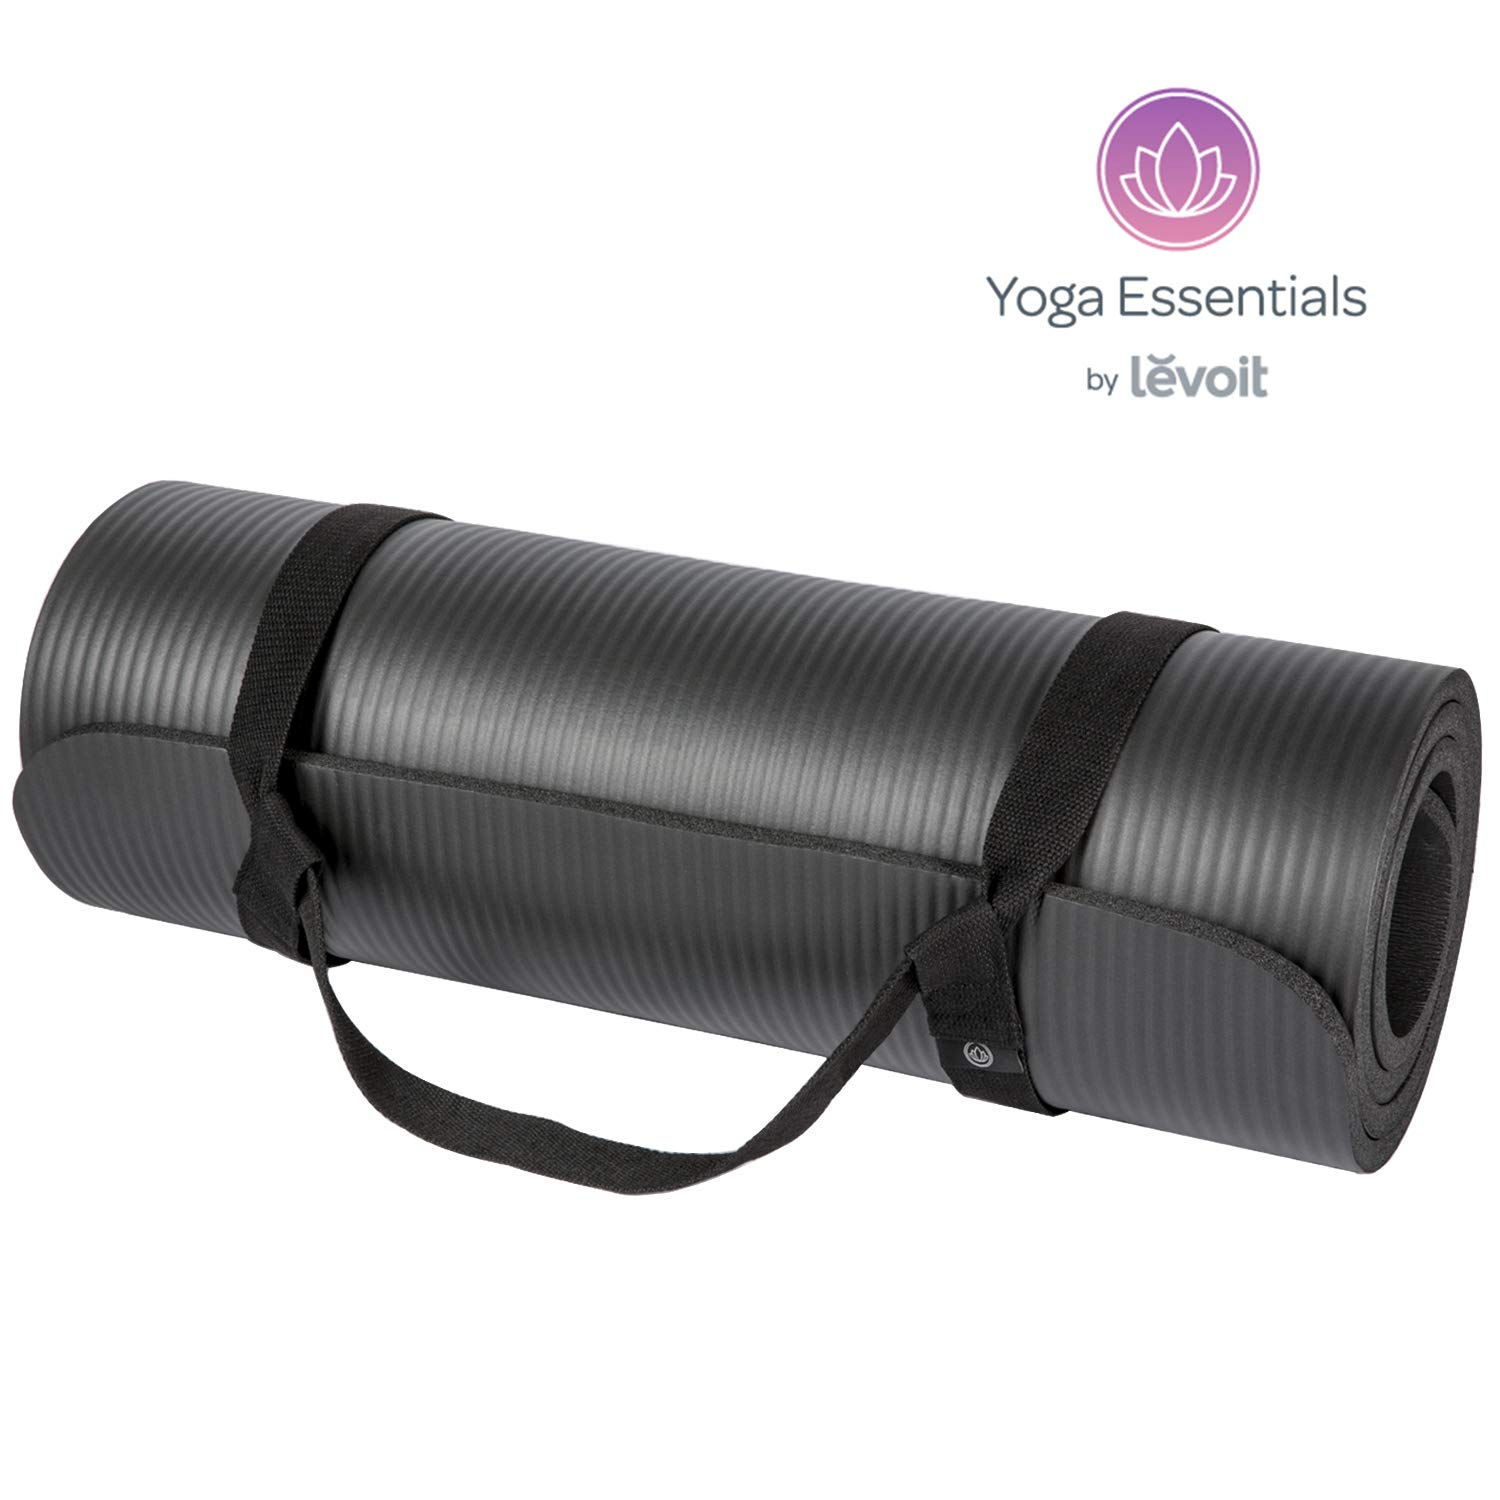 LEVOIT Yoga Exercise Mat, 1/2-Inch Extra Thick Workout Black Mats for Pilates and Fitness, High Density Anti-Tear Non-Slip Comfort NBR Foam with Carrying Strap